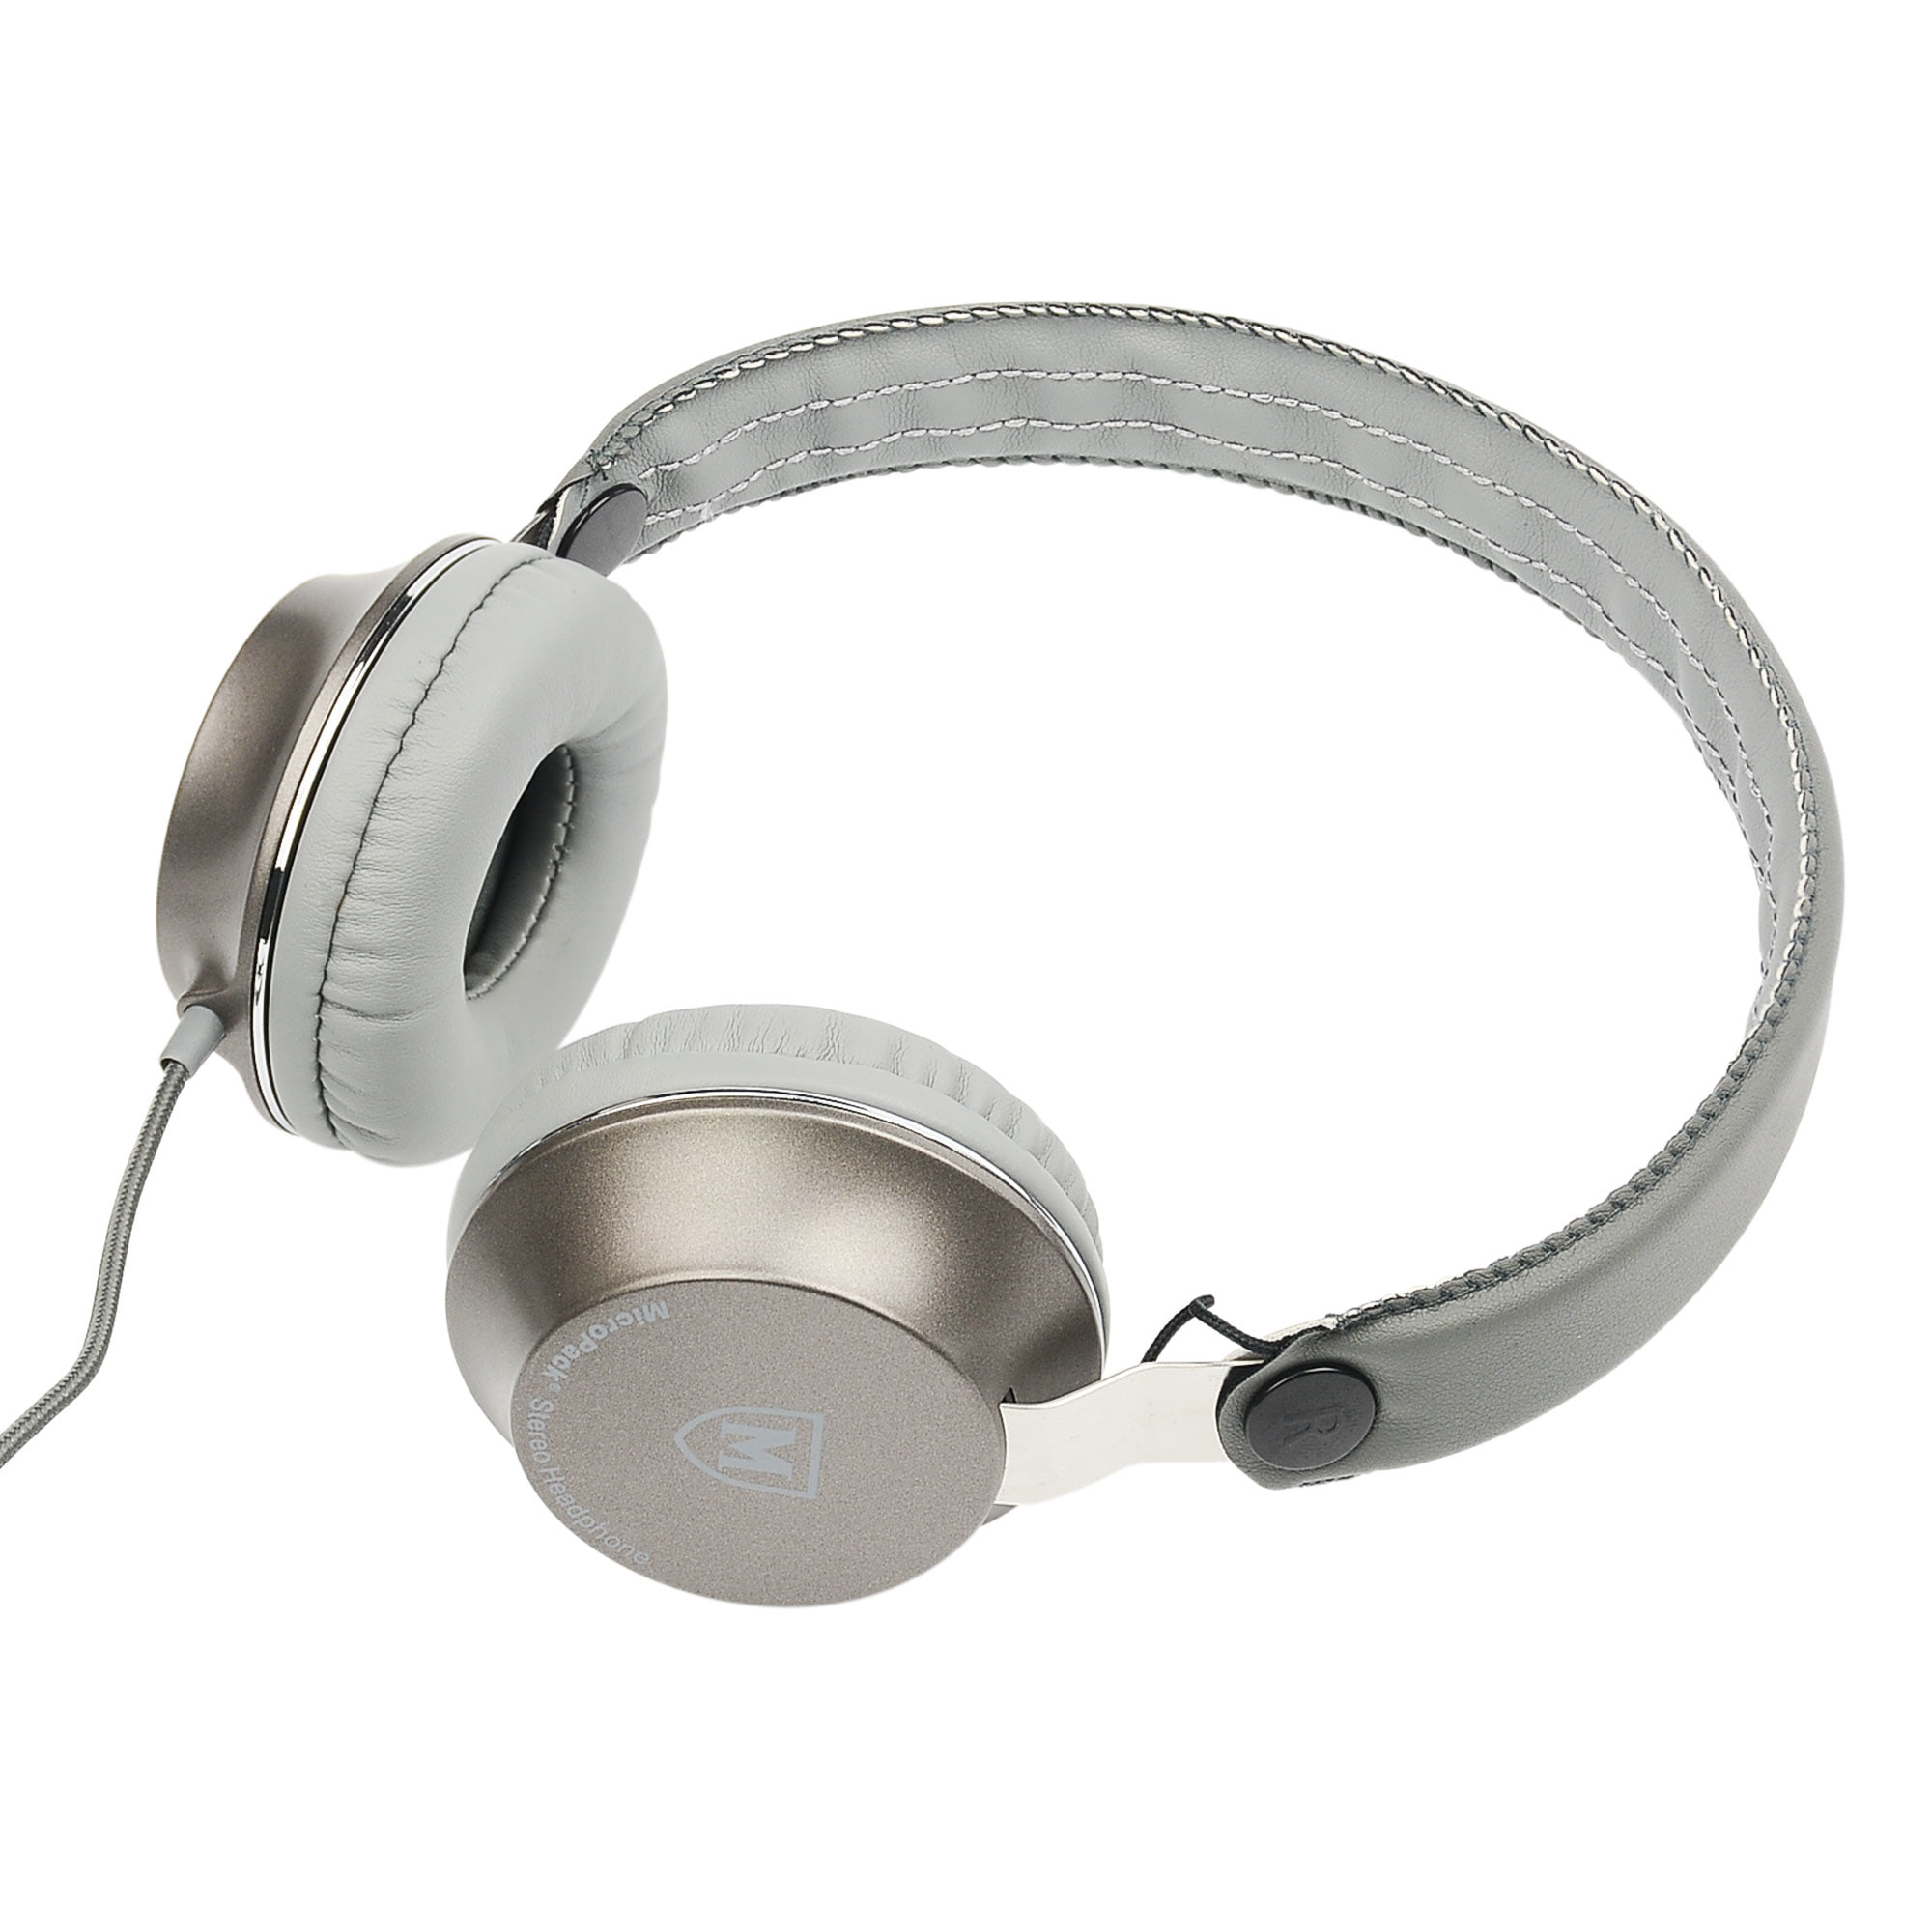 Jual Micropack Headphone W Mic Mhp 510 White Mouse Double Lens Mp Y212r Black Grey